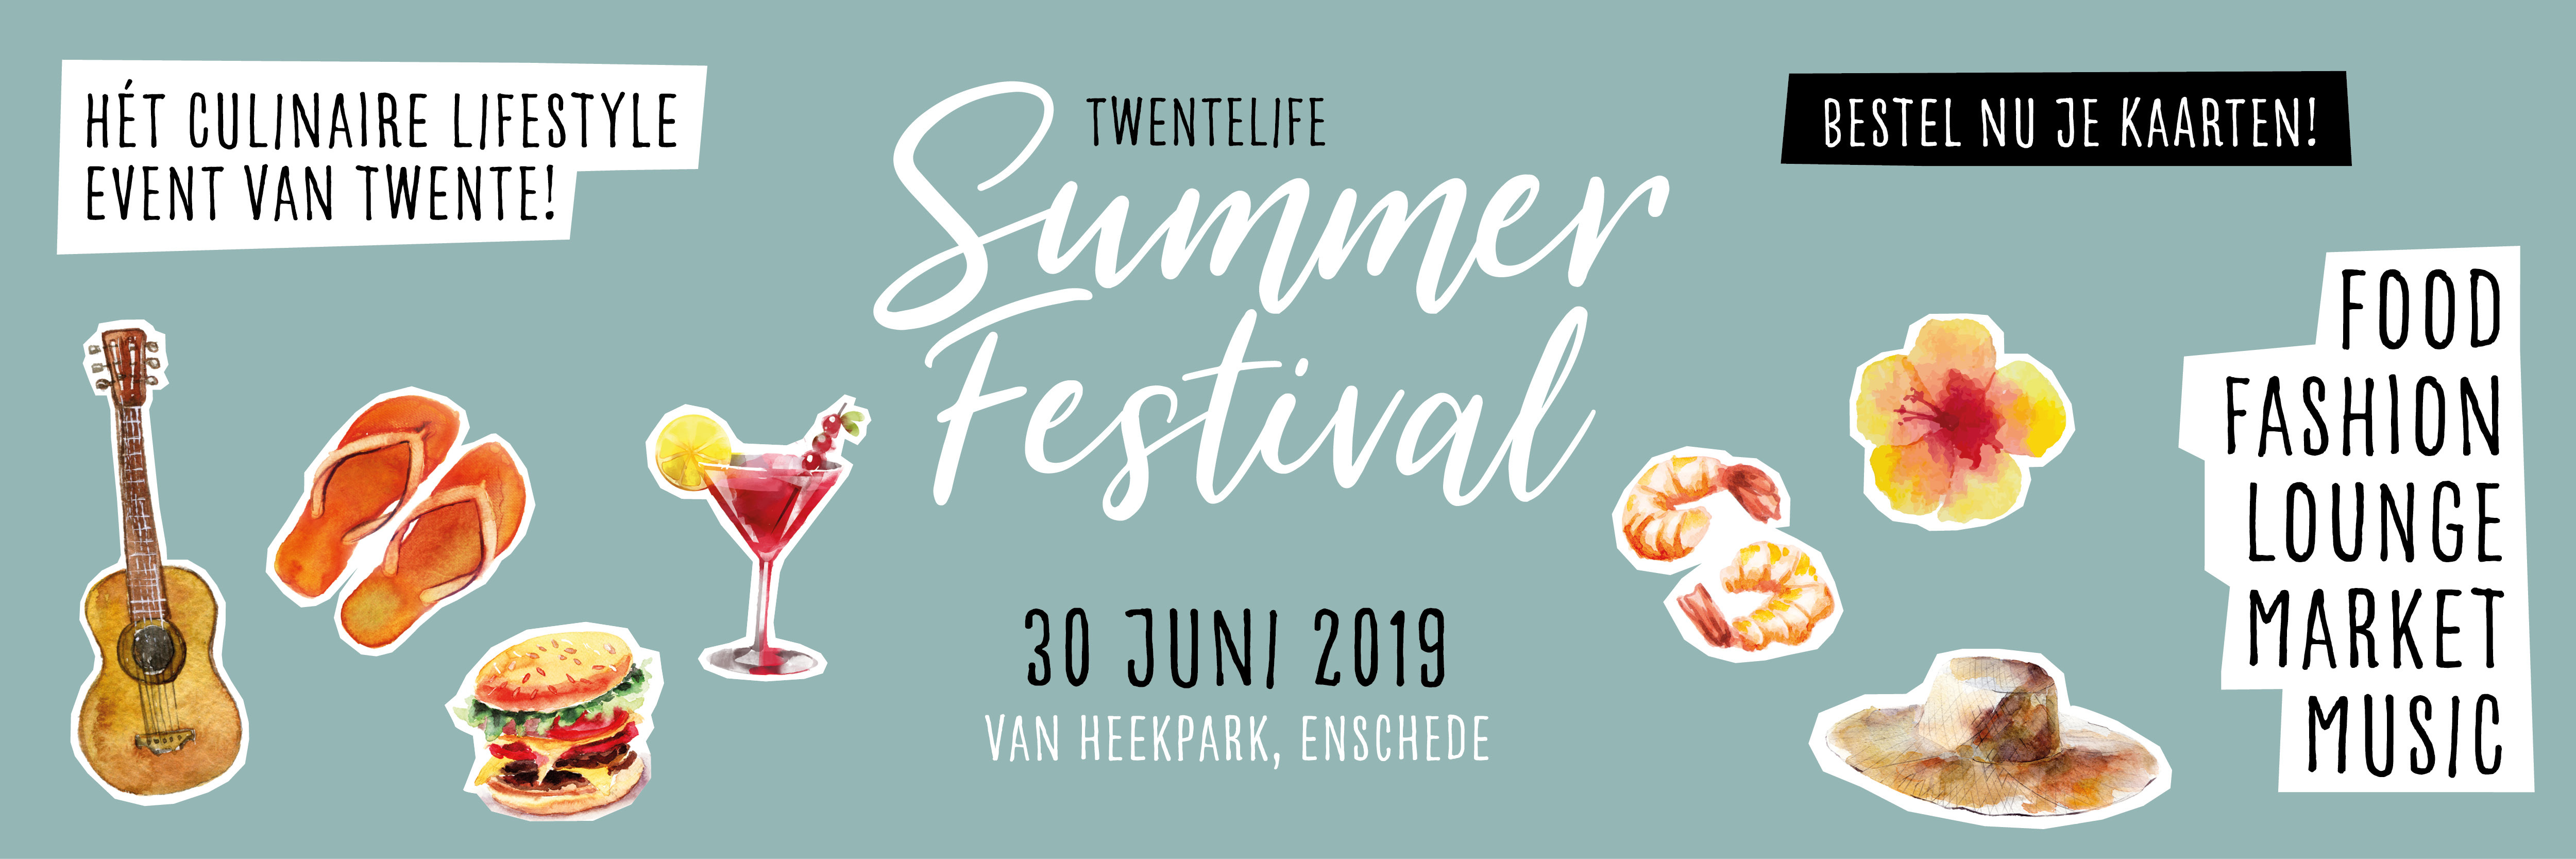 Twentelife Summer Festival